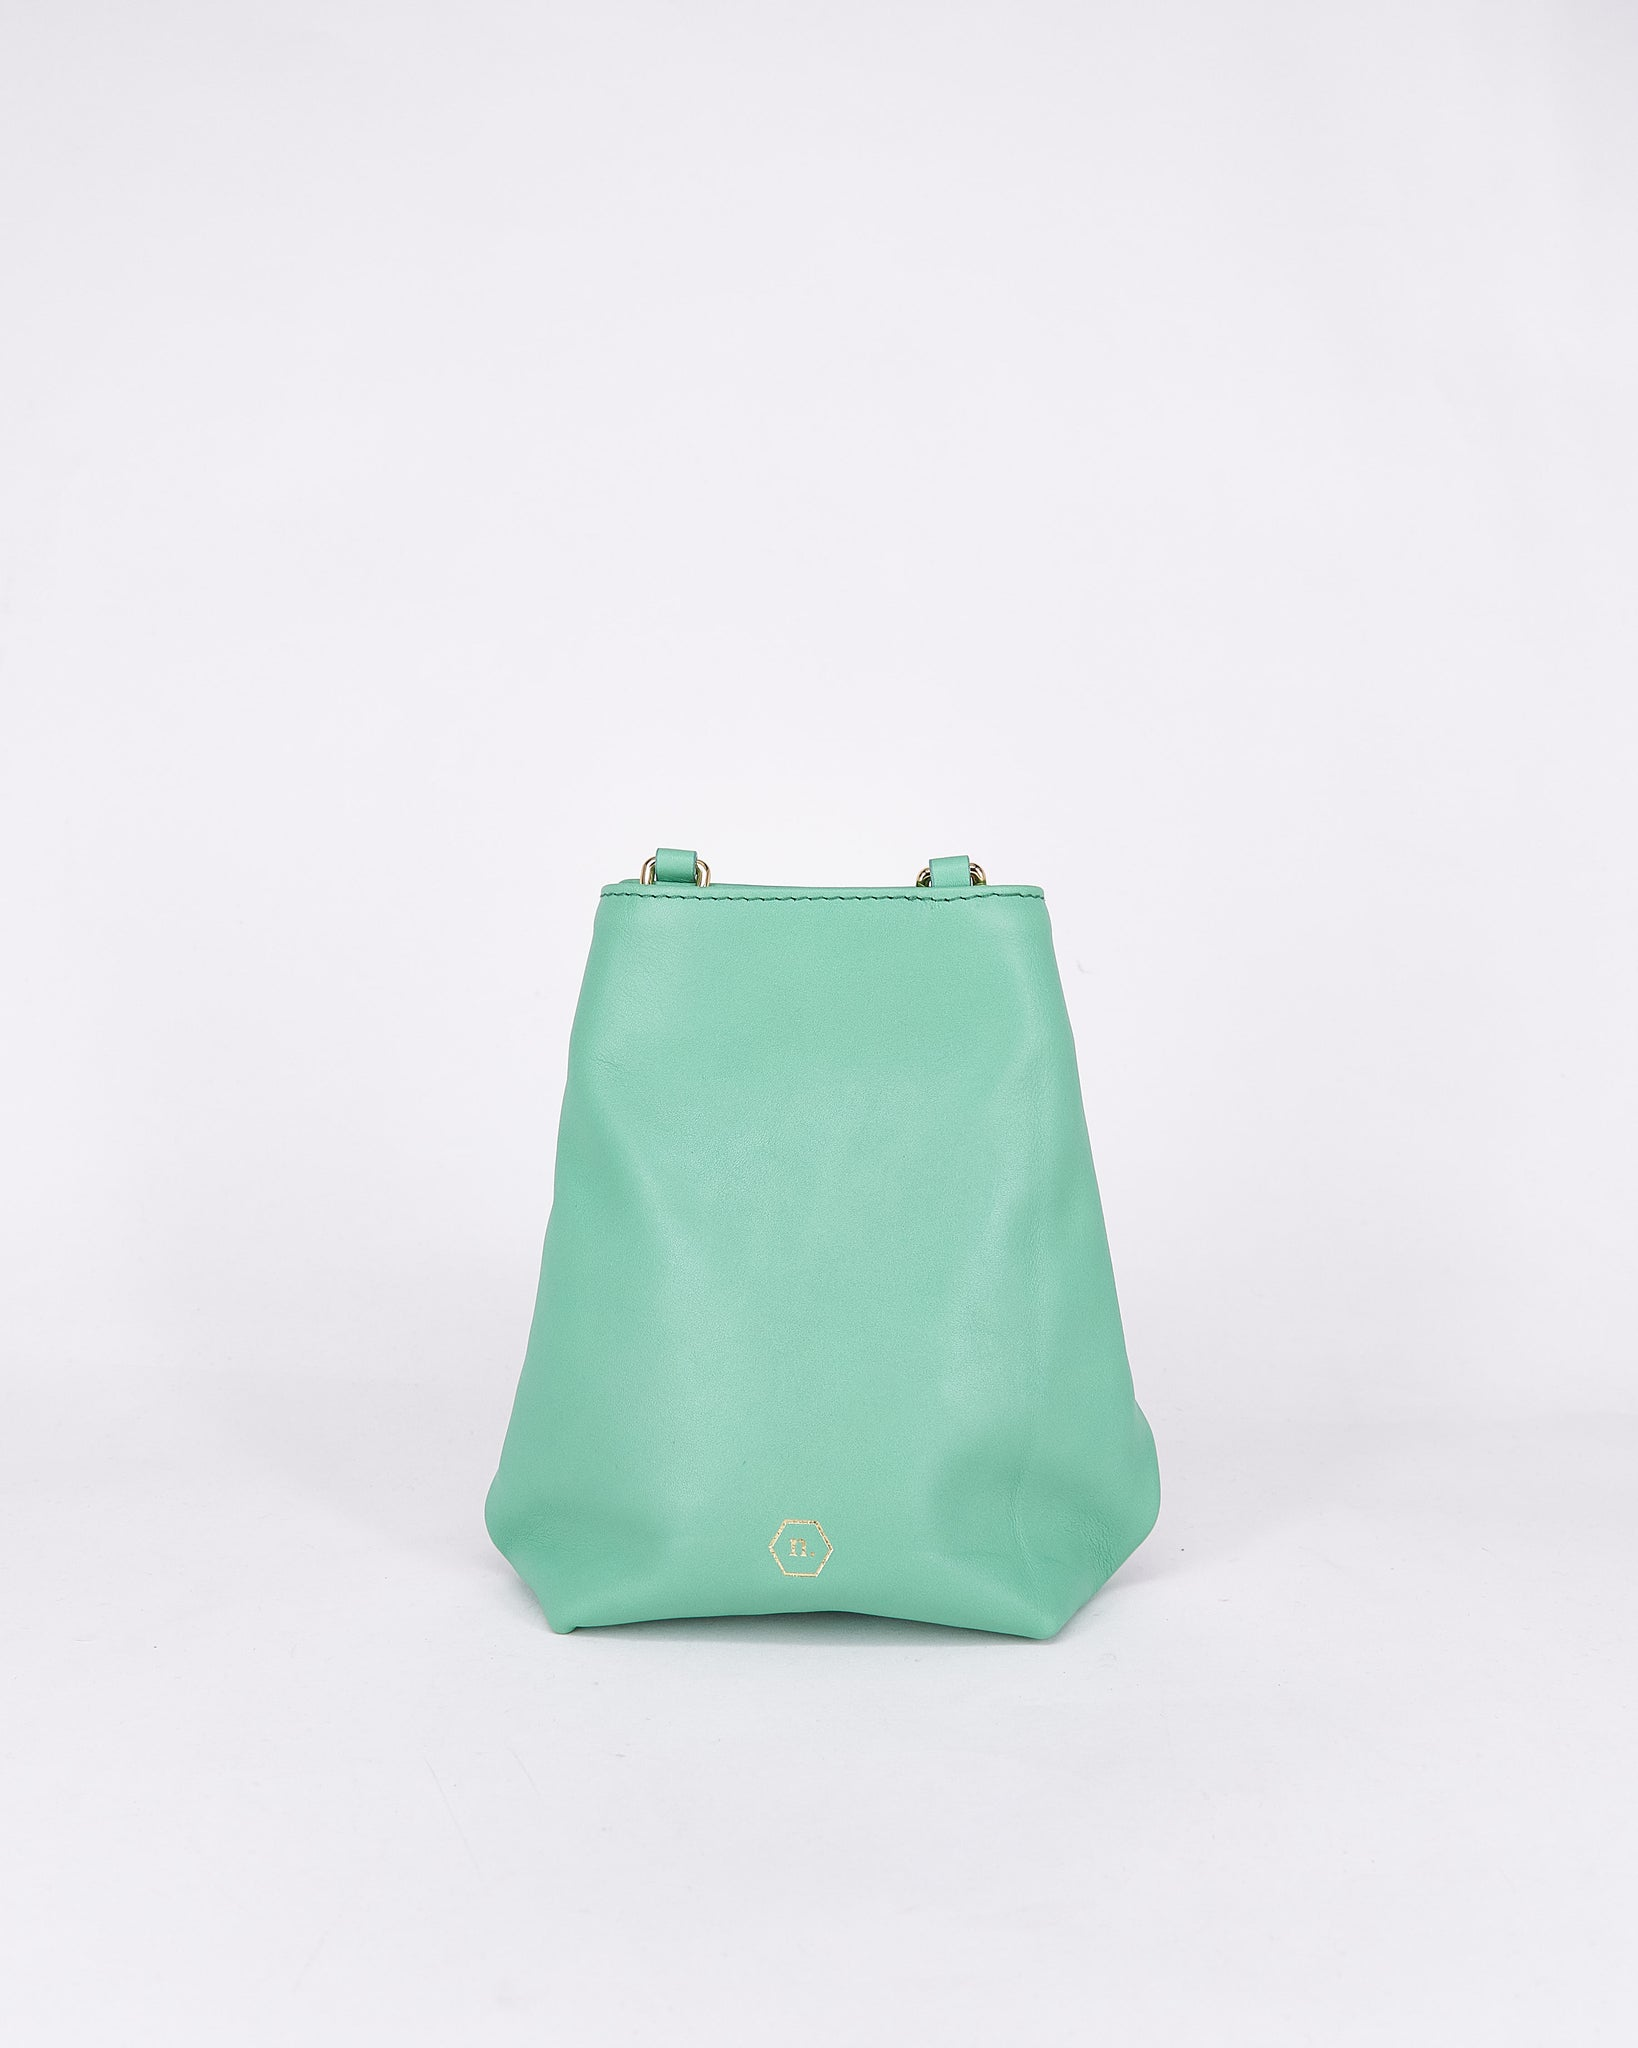 Candy Sac Green